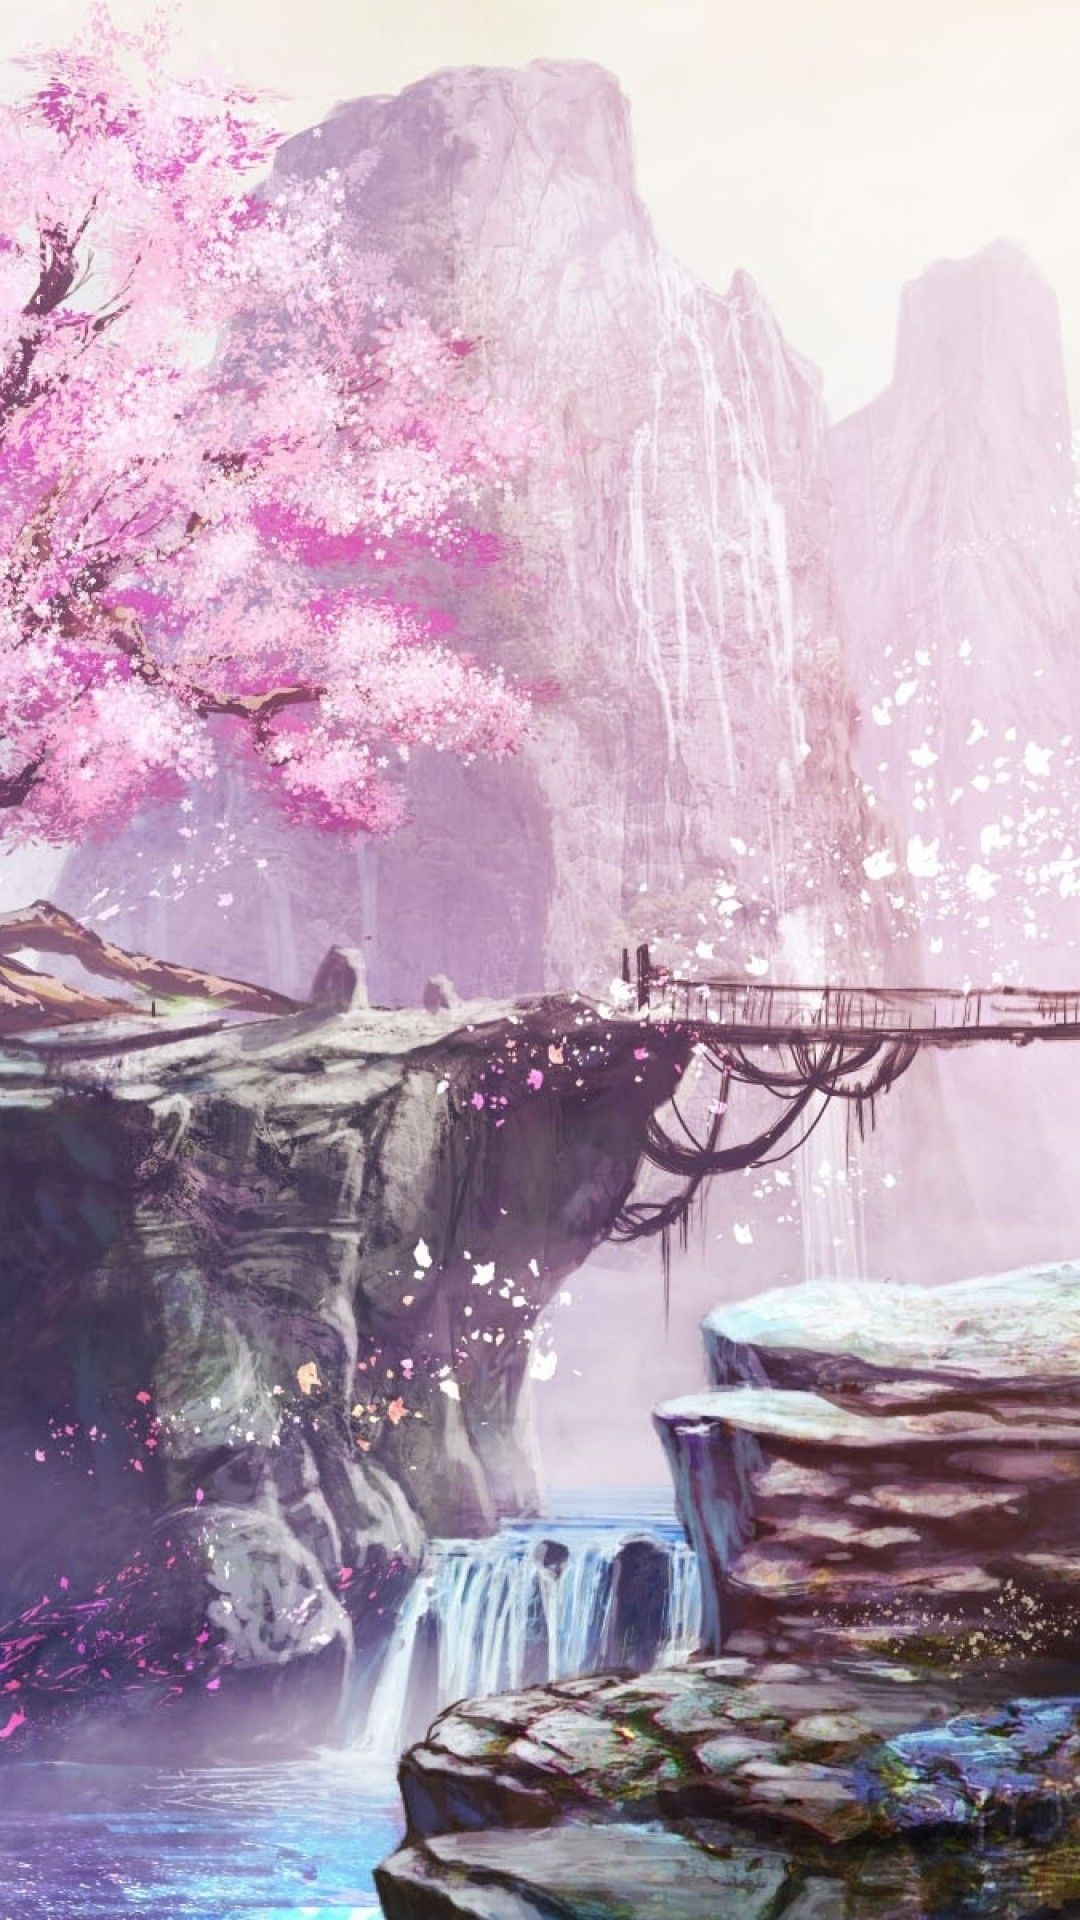 1080x1920 anime landscape cherry blossom bridge - Anime cherry blossom wallpaper ...